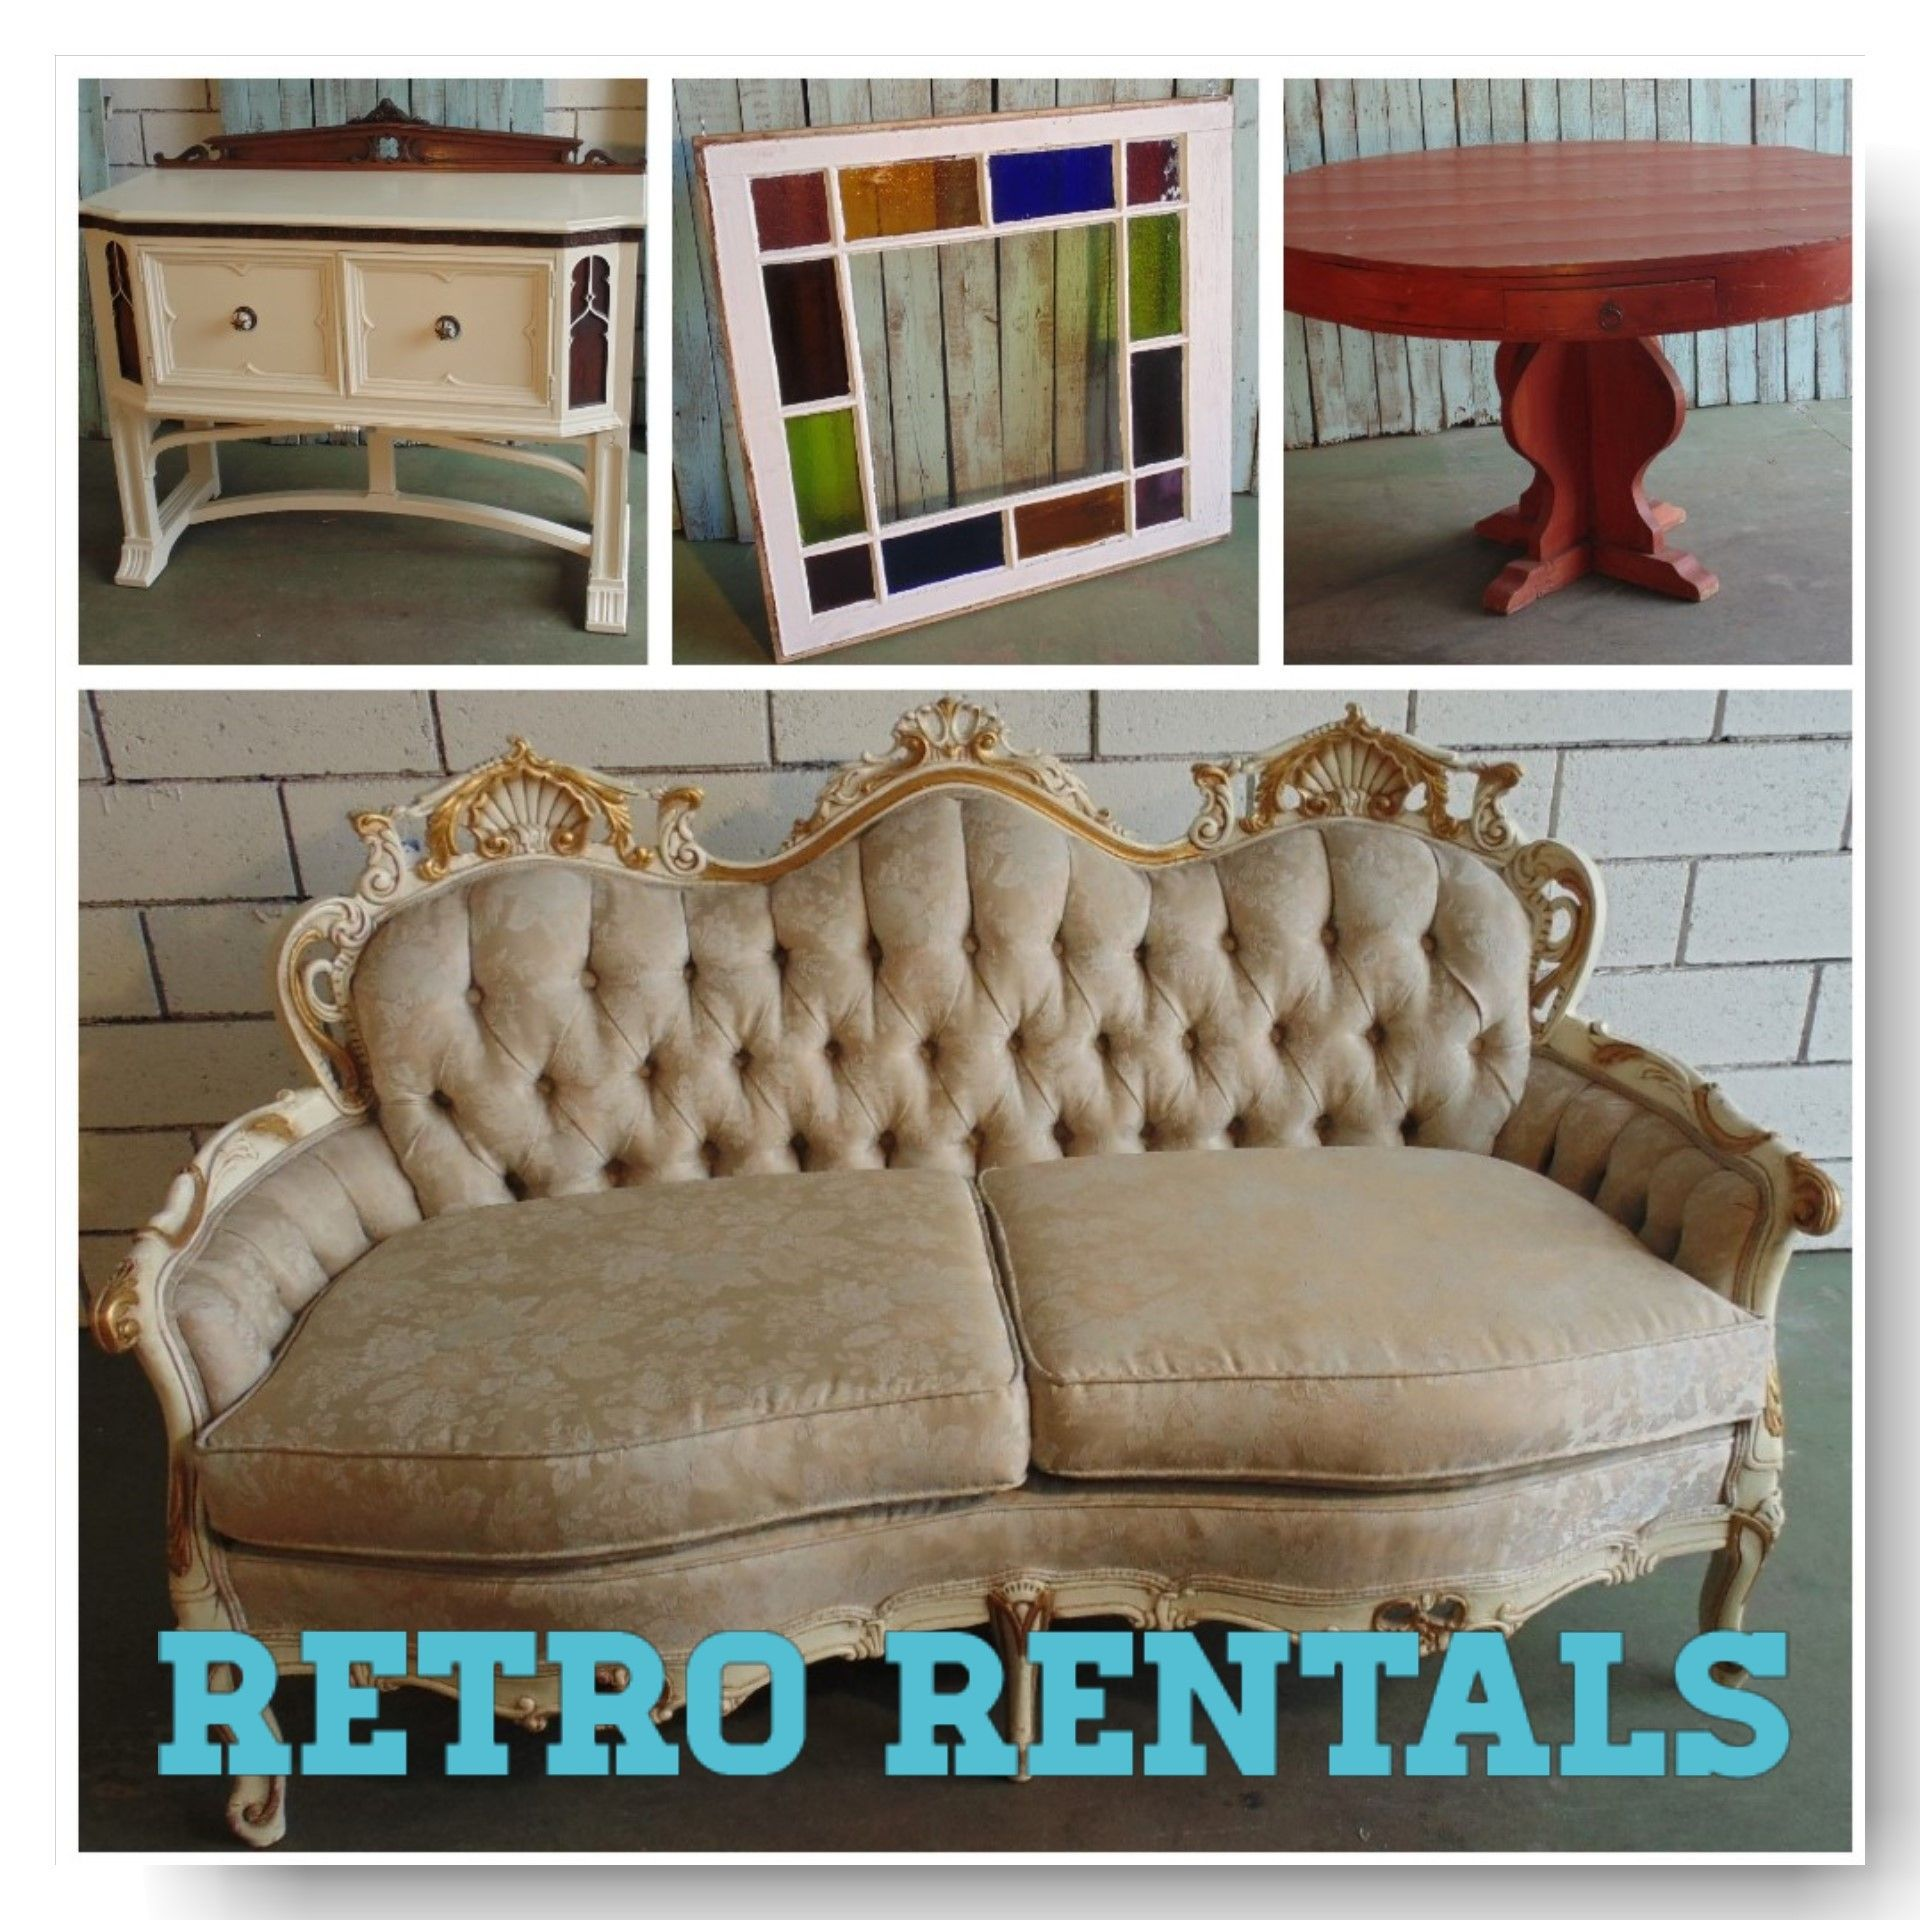 Vintage Rentals In Phoenix Retro Offers The Most Unique Collection Of For Weddings Photo Shoots Special Events